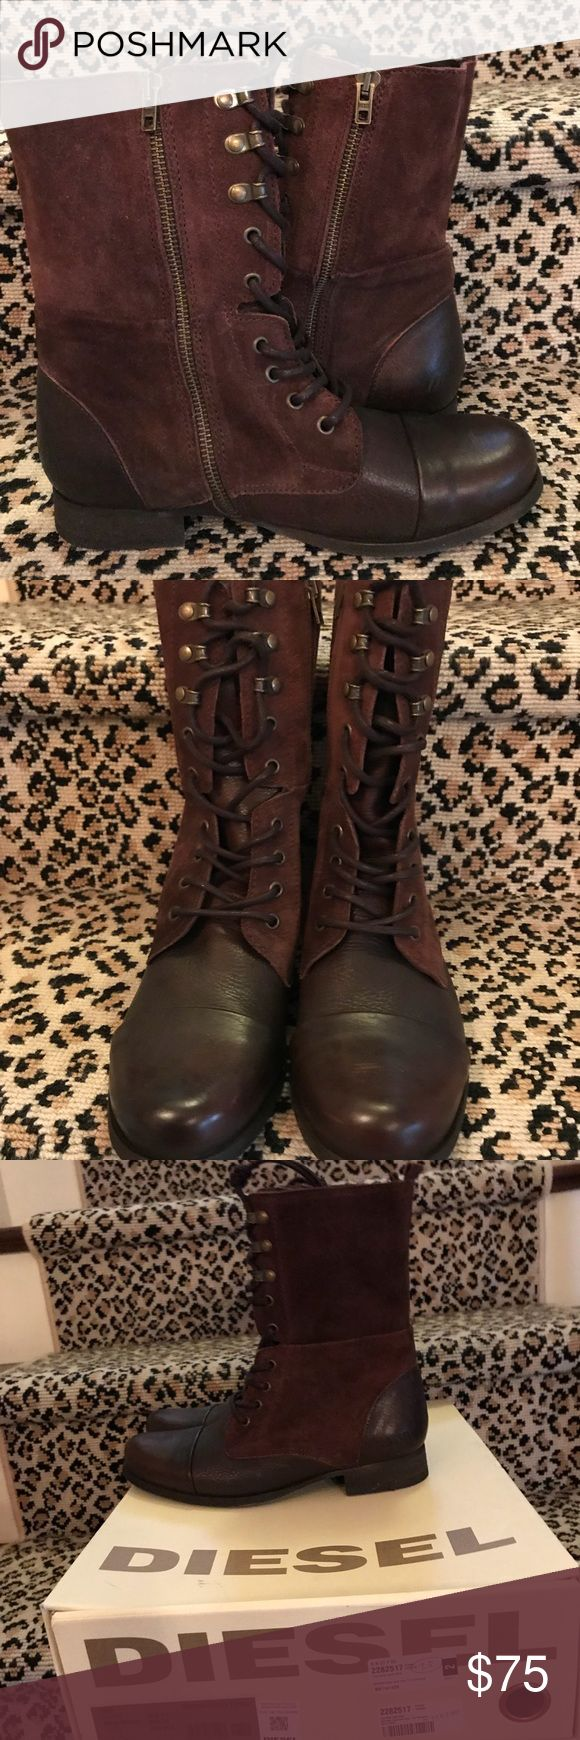 "NIB Brown Diesel 👢 Boots. 7.5 Brand New/In Box Brown Diesel 👢 Boots. A Lace Up ""Combat Style"" with a Feminine Look. Lace Up and Inner Zipper. Boots are Leather and Suede. 7.5 Diesel Shoes Lace Up Boots"